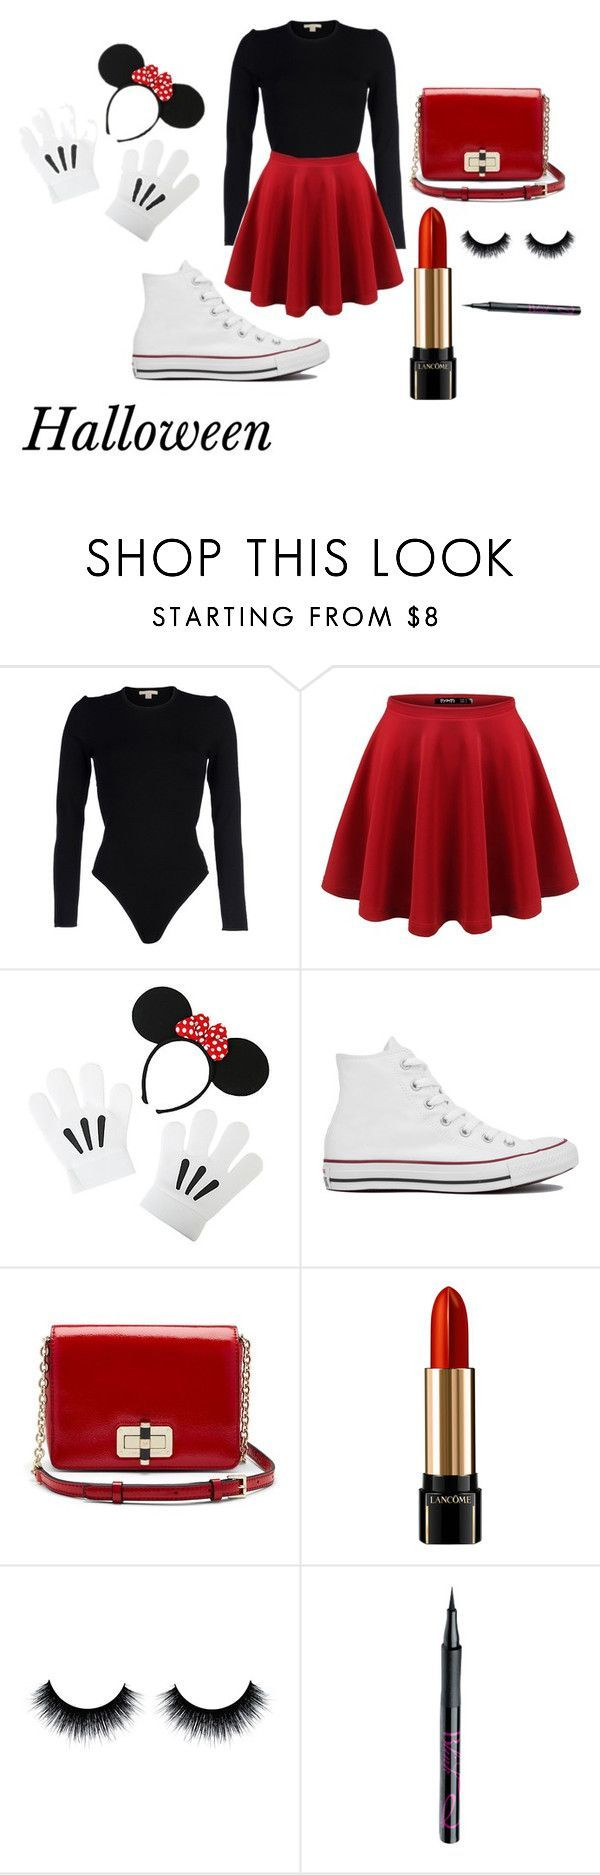 """Minnie Mouse Halloween Costume"" by deshae27 ❤️ liked on Polyvore featuring Michael Kors, Disney, Converse, Diane Von Furstenberg, Lancôme and Barry M"